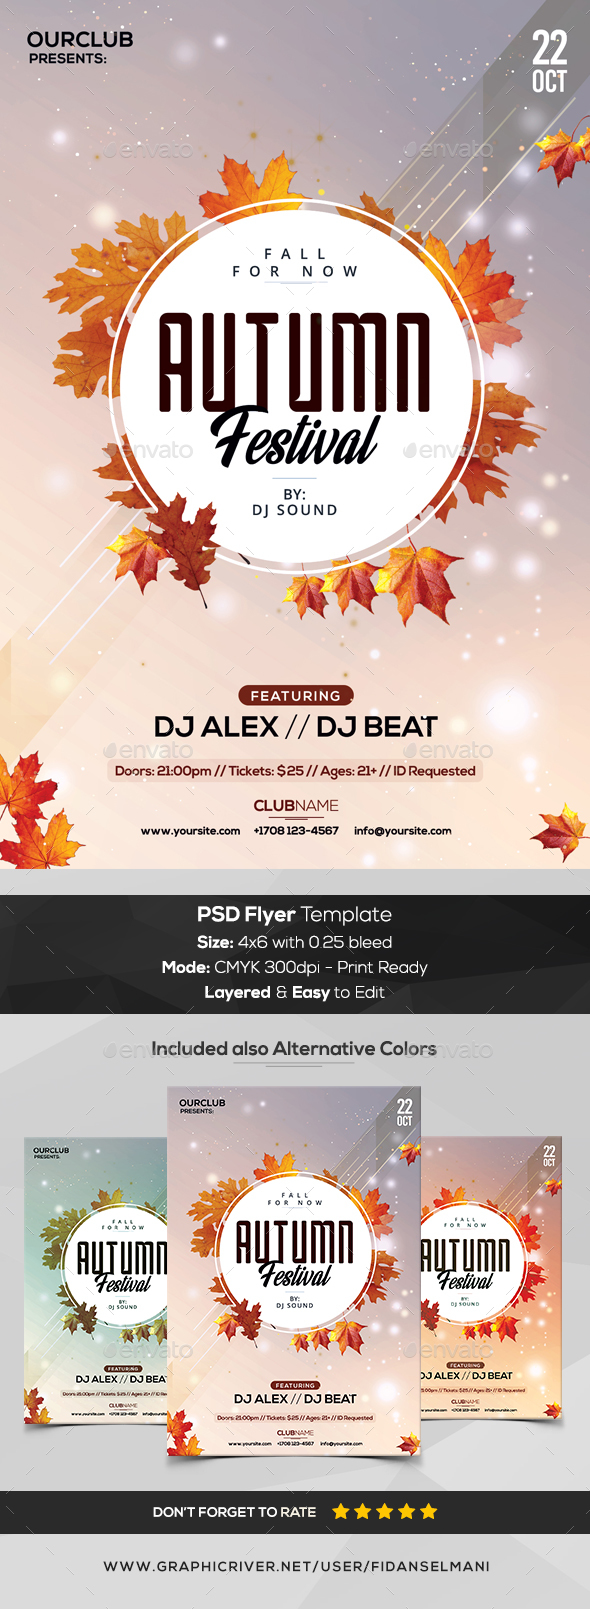 Autumn Festival - PSD Flyer Template - Flyers Print Templates